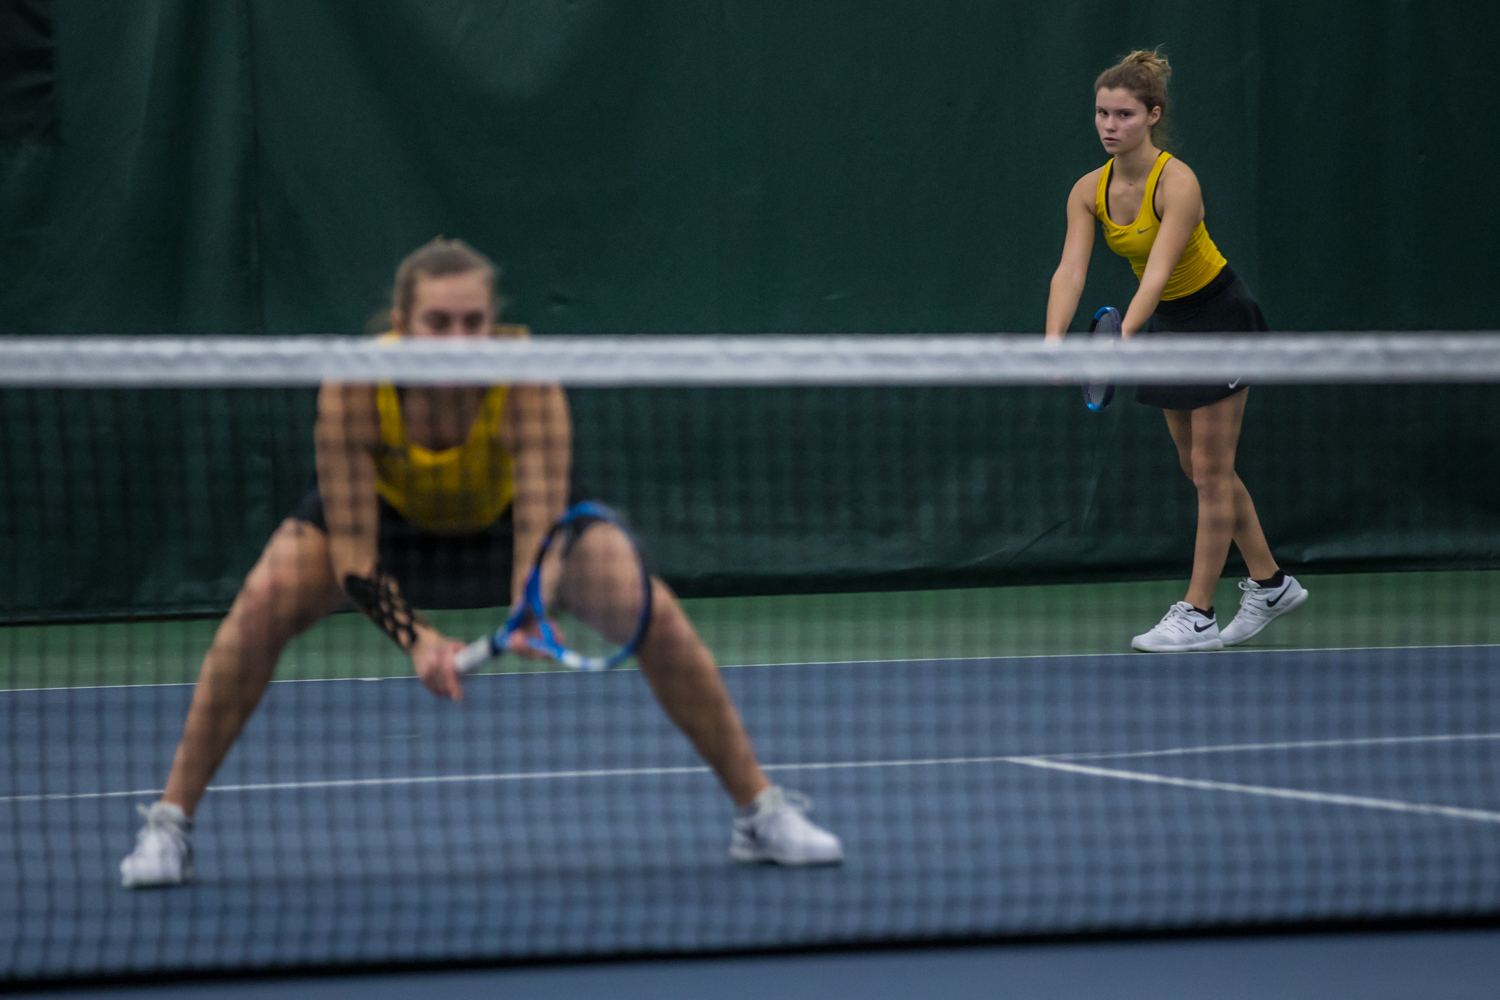 Iowa%27s+Cloe+Ruette+prepares+to+serve+during+a+women%27s+tennis+match+between+Iowa+and+Xavier+at+the+Hawkeye+Tennis+and+Recreation+Center+on+Friday%2C+January+18%2C+2019.+The+Hawkeyes+swept+the+Musketeers%2C+7-0.